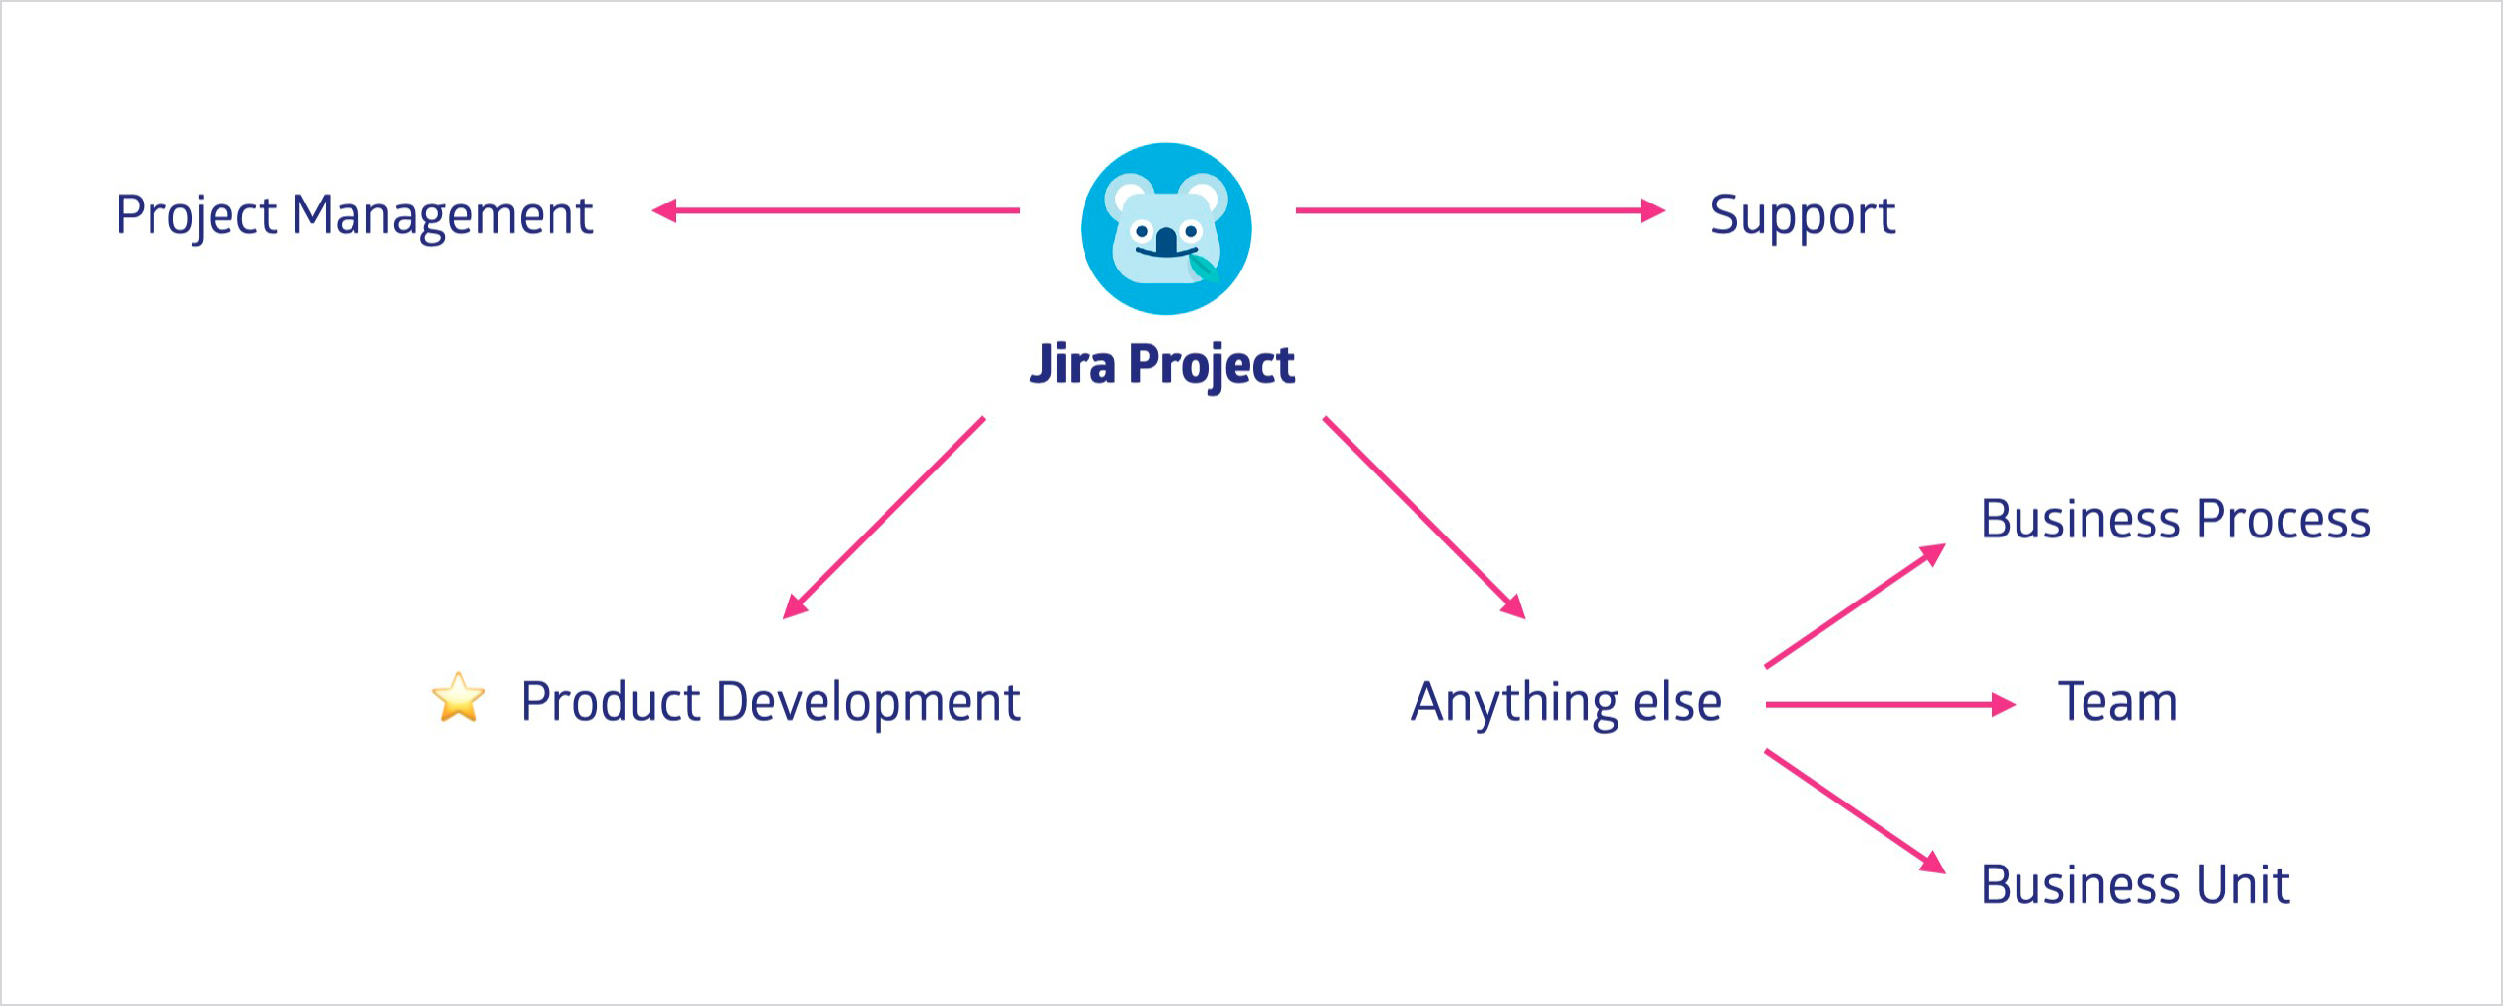 What does represent a project in Jira?